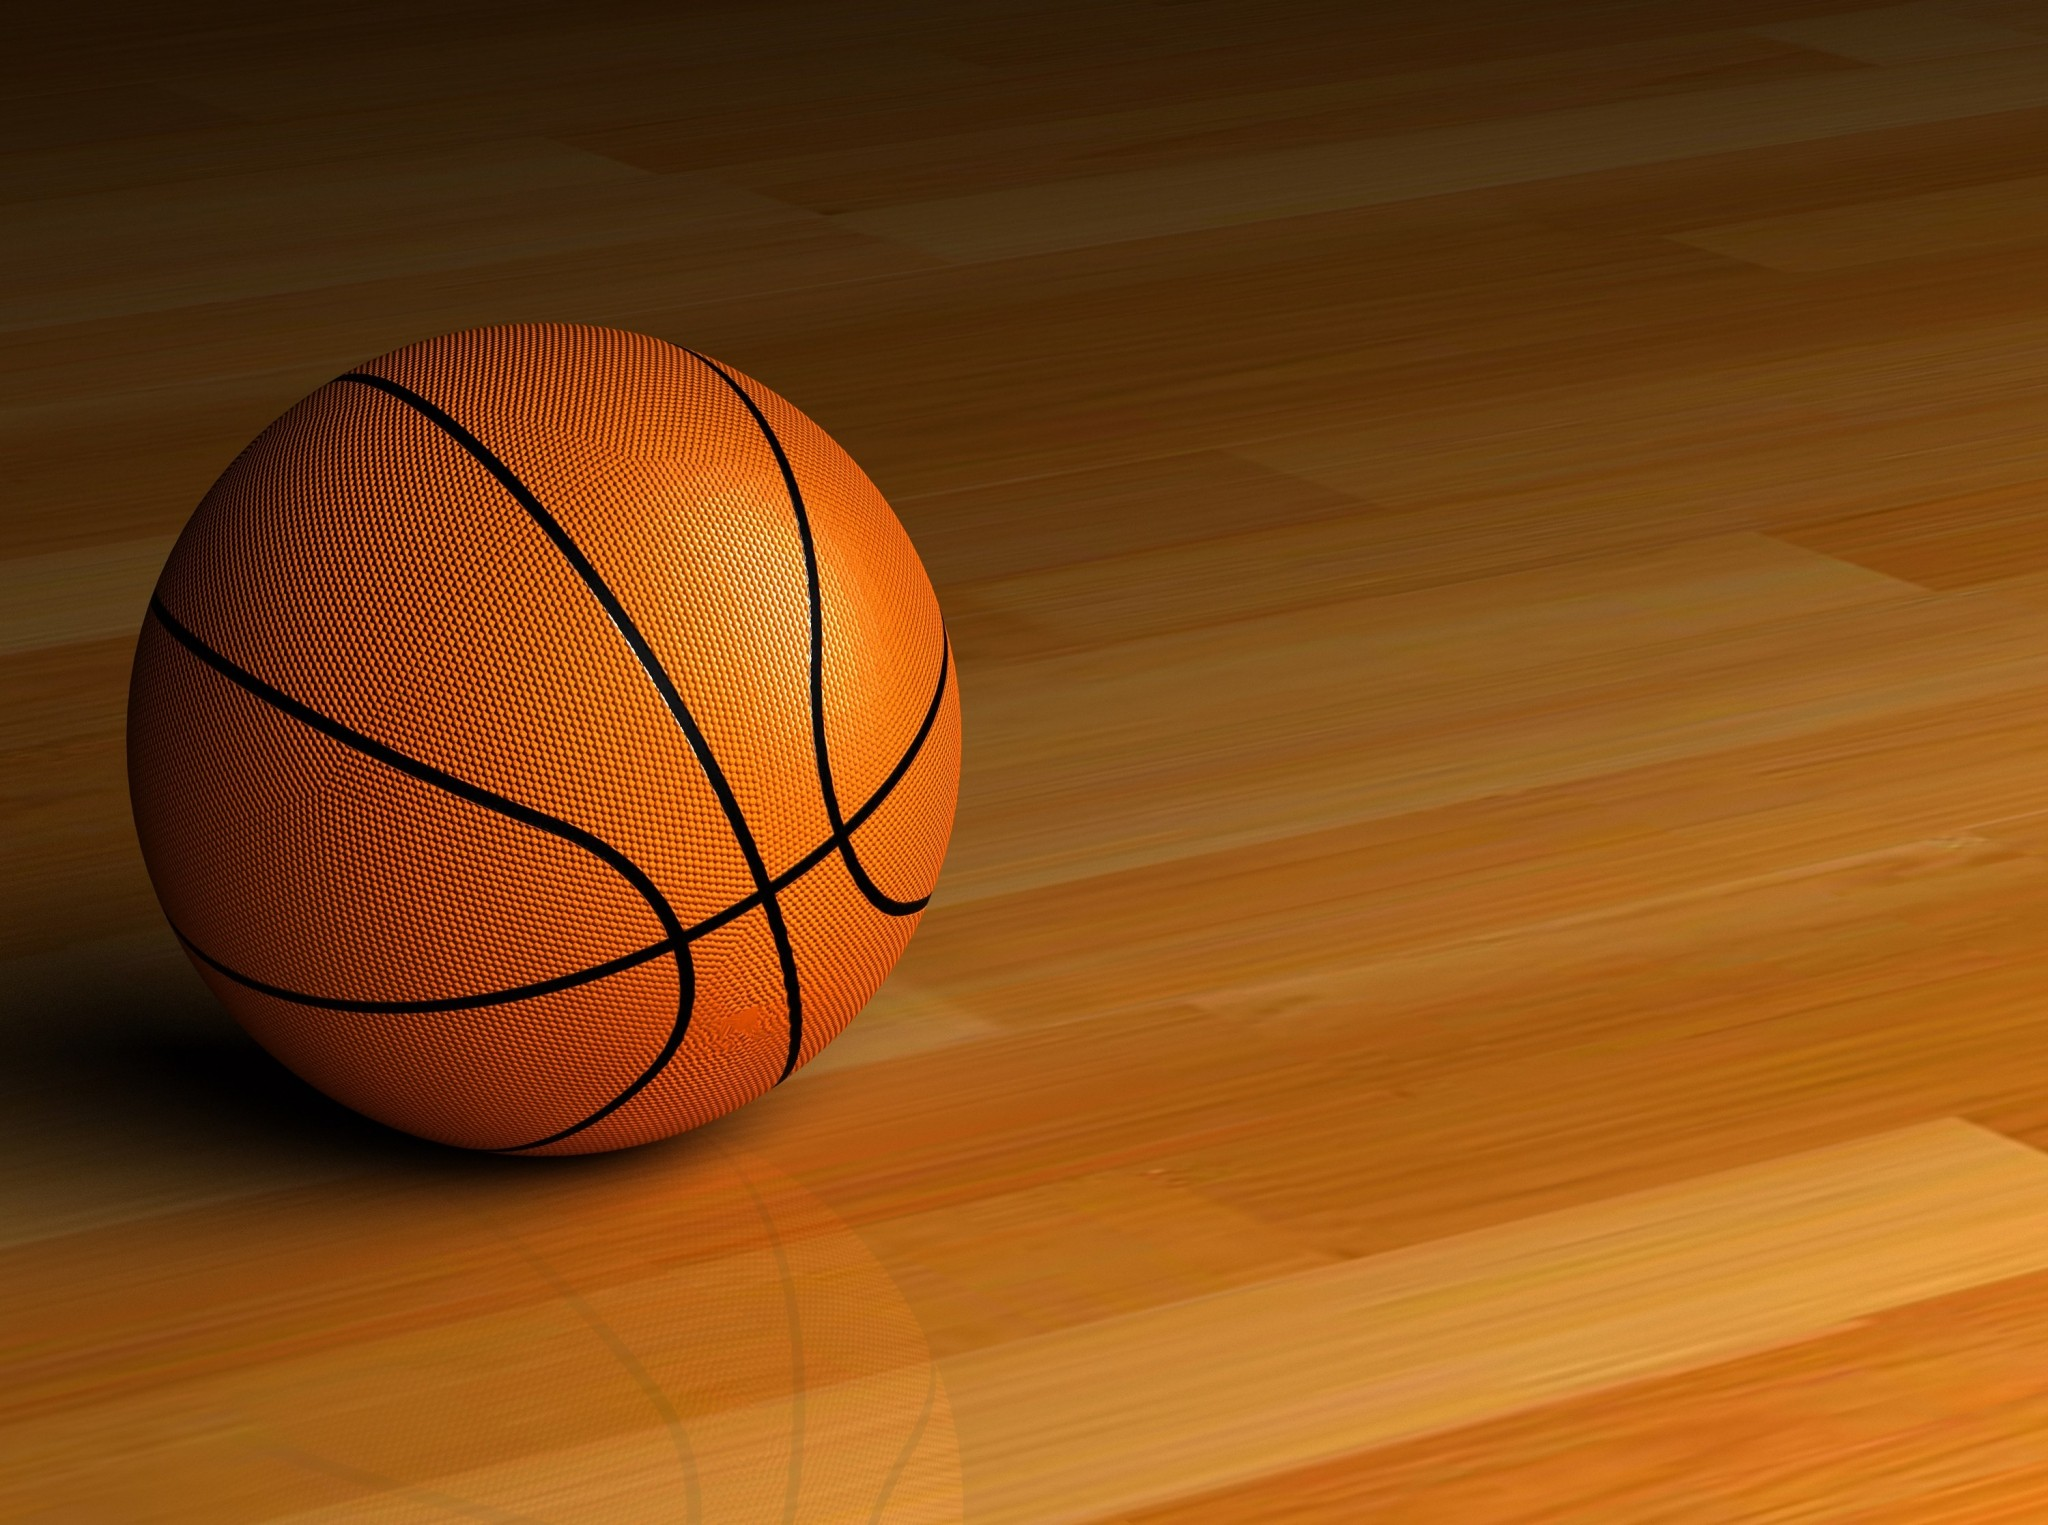 Basketball backgrounds for computers